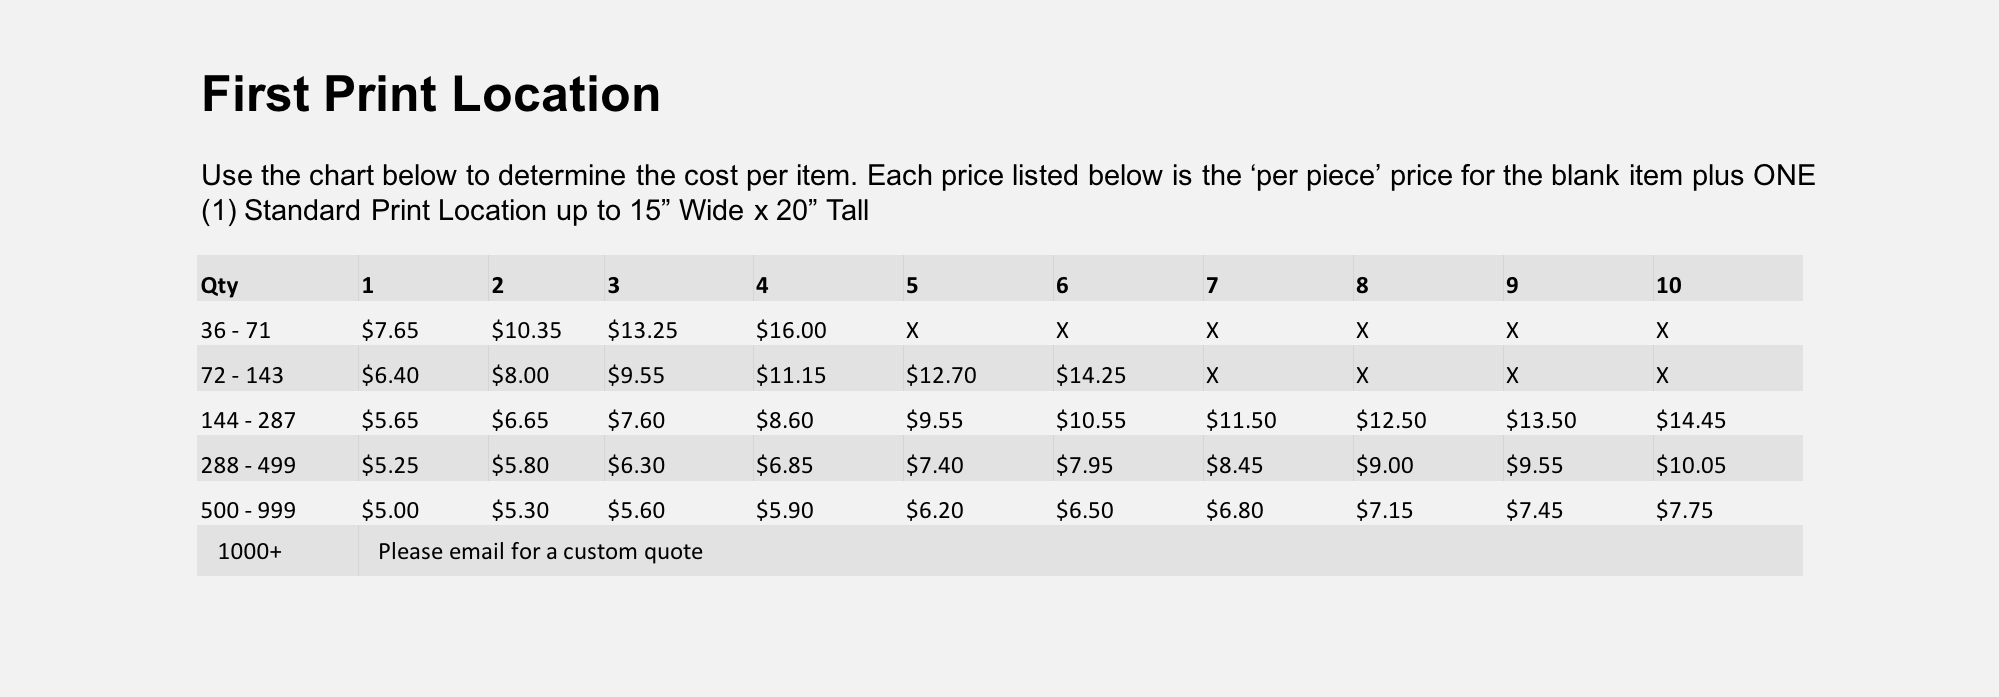 880_Pricing.png